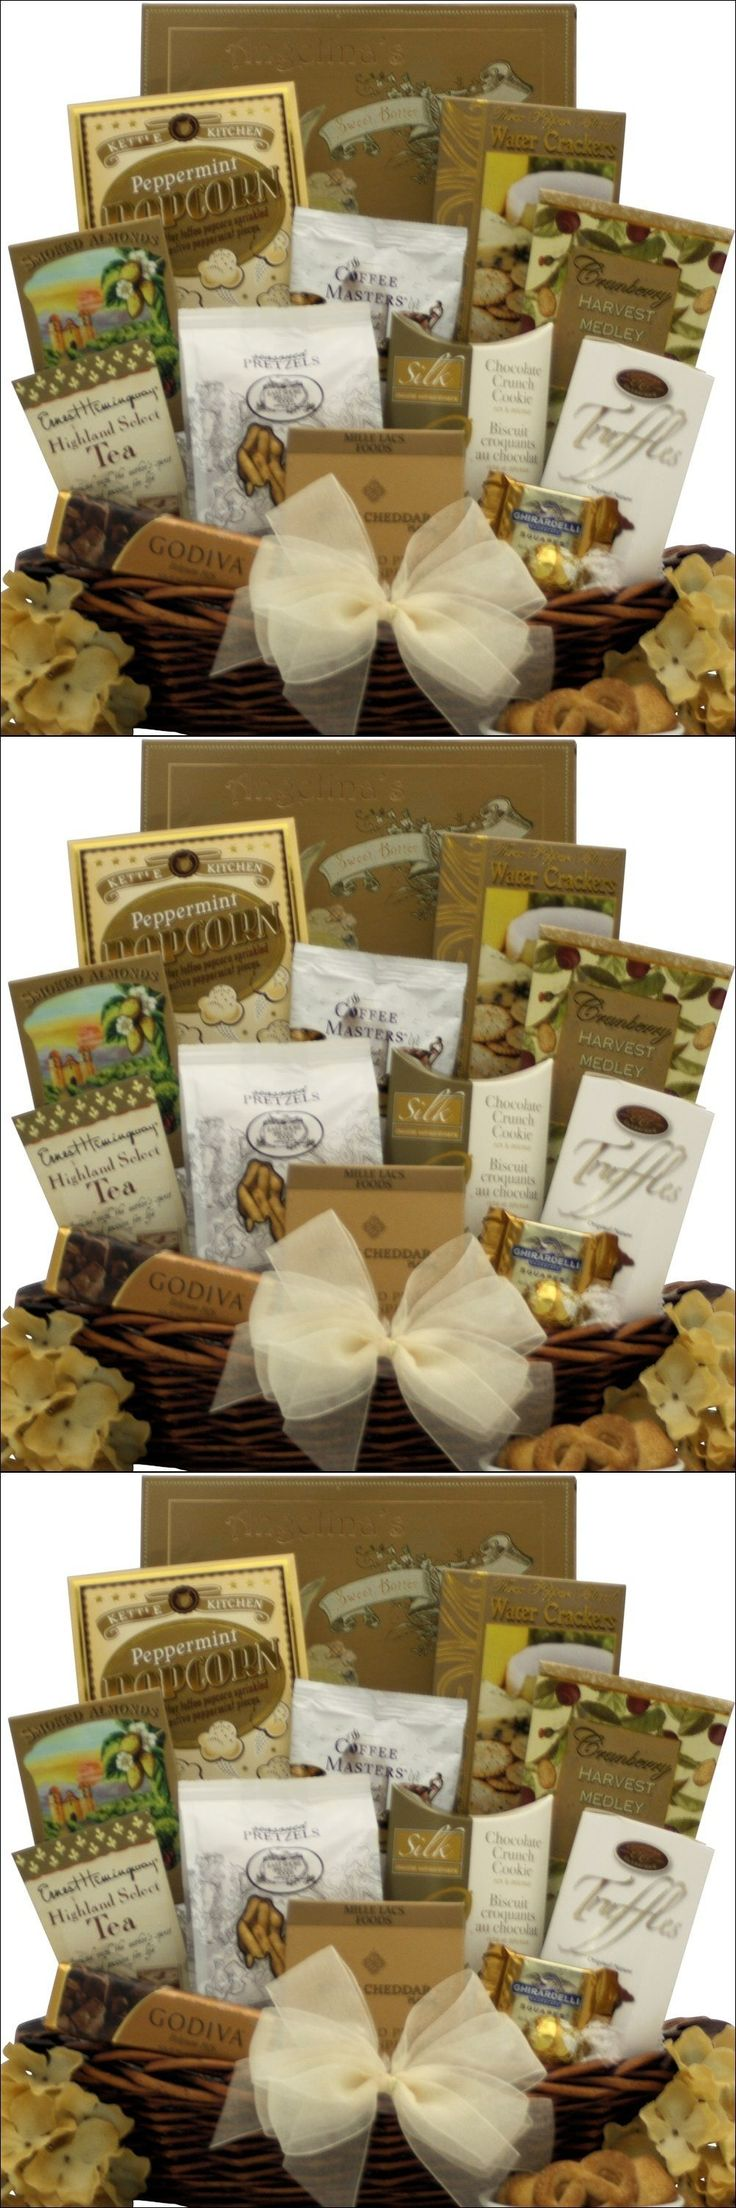 Gift Baskets And Supplies 16091: Classic Elegance: Corporate Gourmet Gift  Basket Great Arrivals Ce